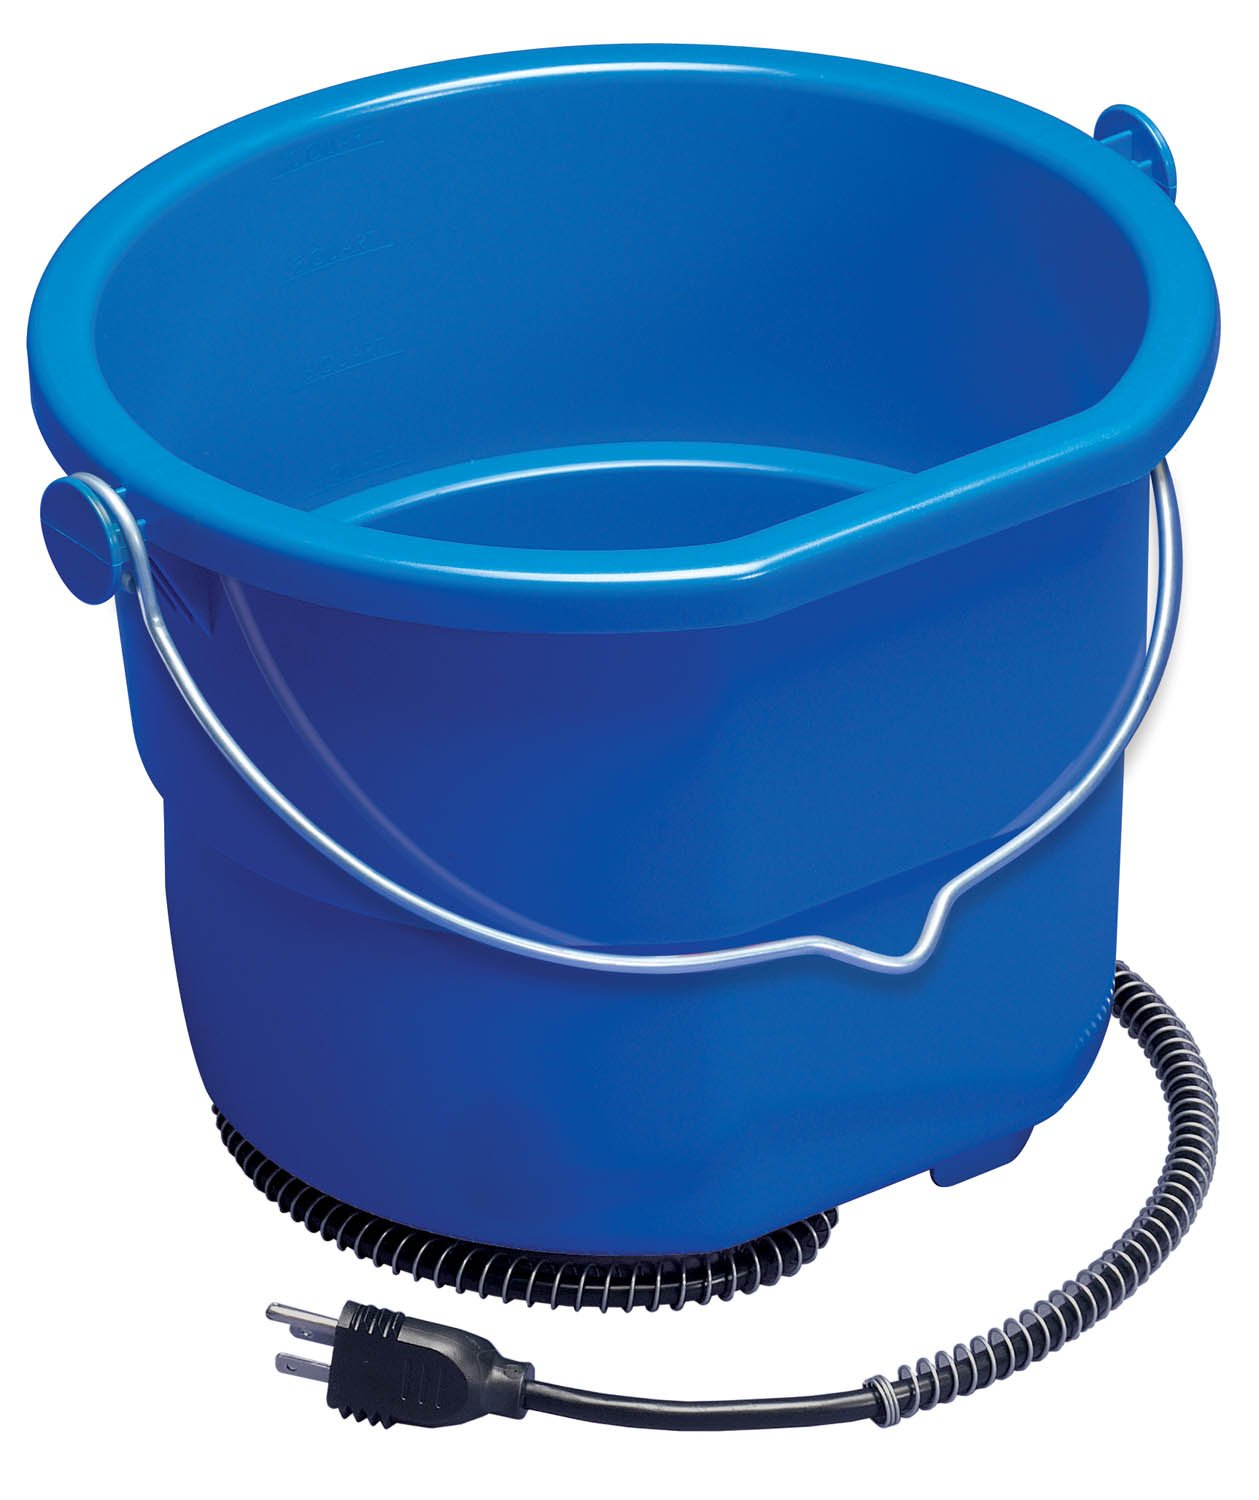 API 10 Quart Heated Bucket  10FB by API